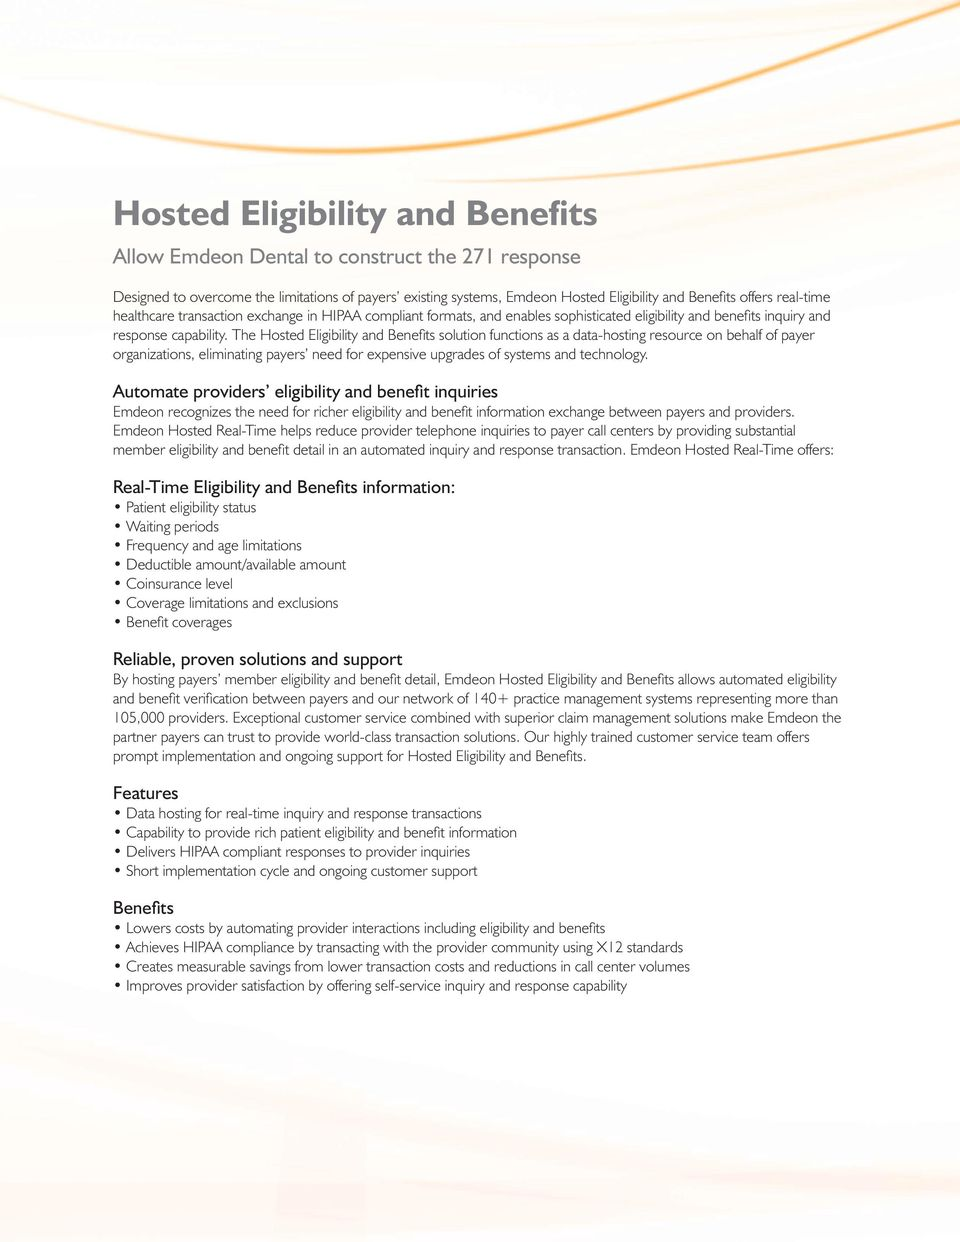 The Hosted Eligibility and Benefits solution functions as a data-hosting resource on behalf of payer organizations, eliminating payers need for expensive upgrades of systems and technology.